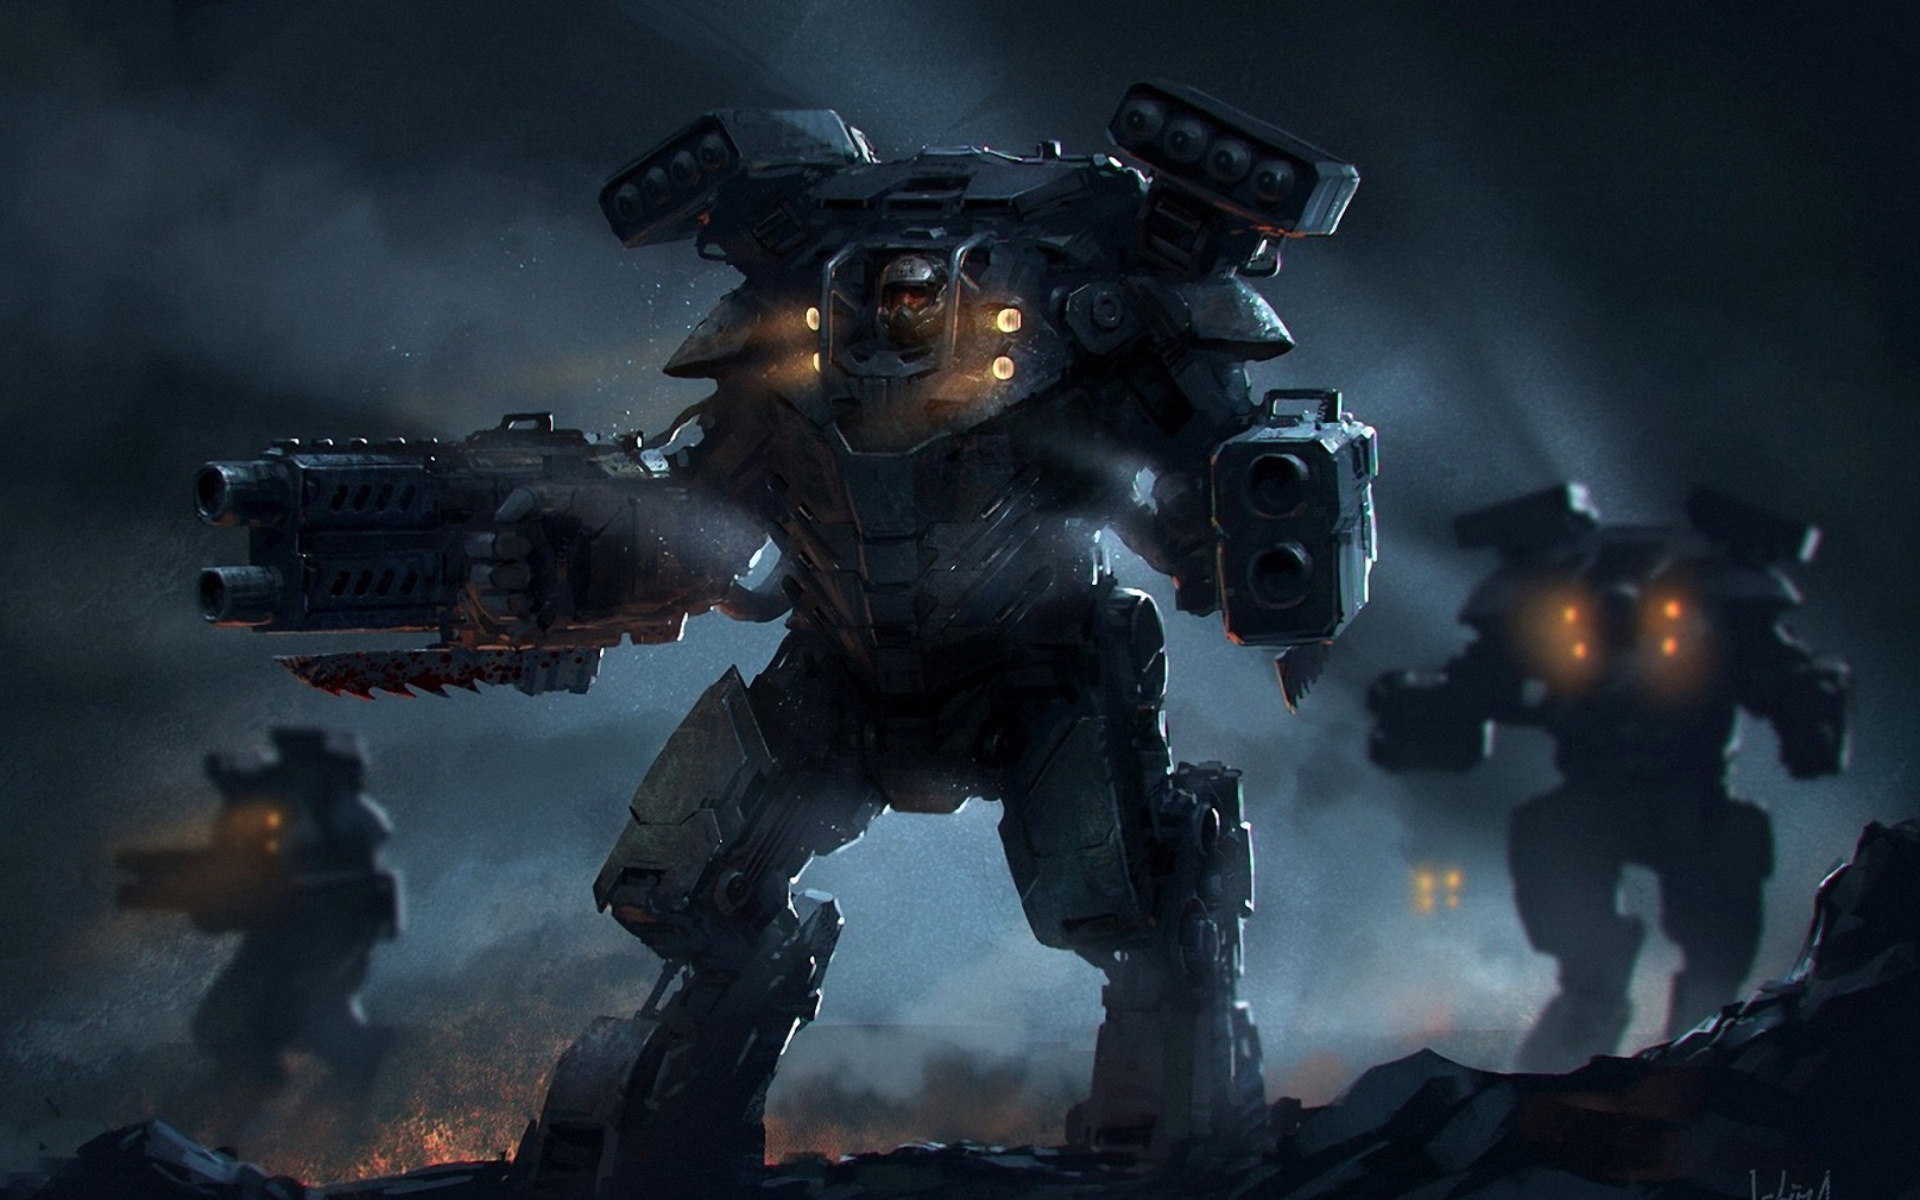 Mechwarrior online game wallpaper for 1920x1200 - Games hd wallpapers 1920x1200 ...